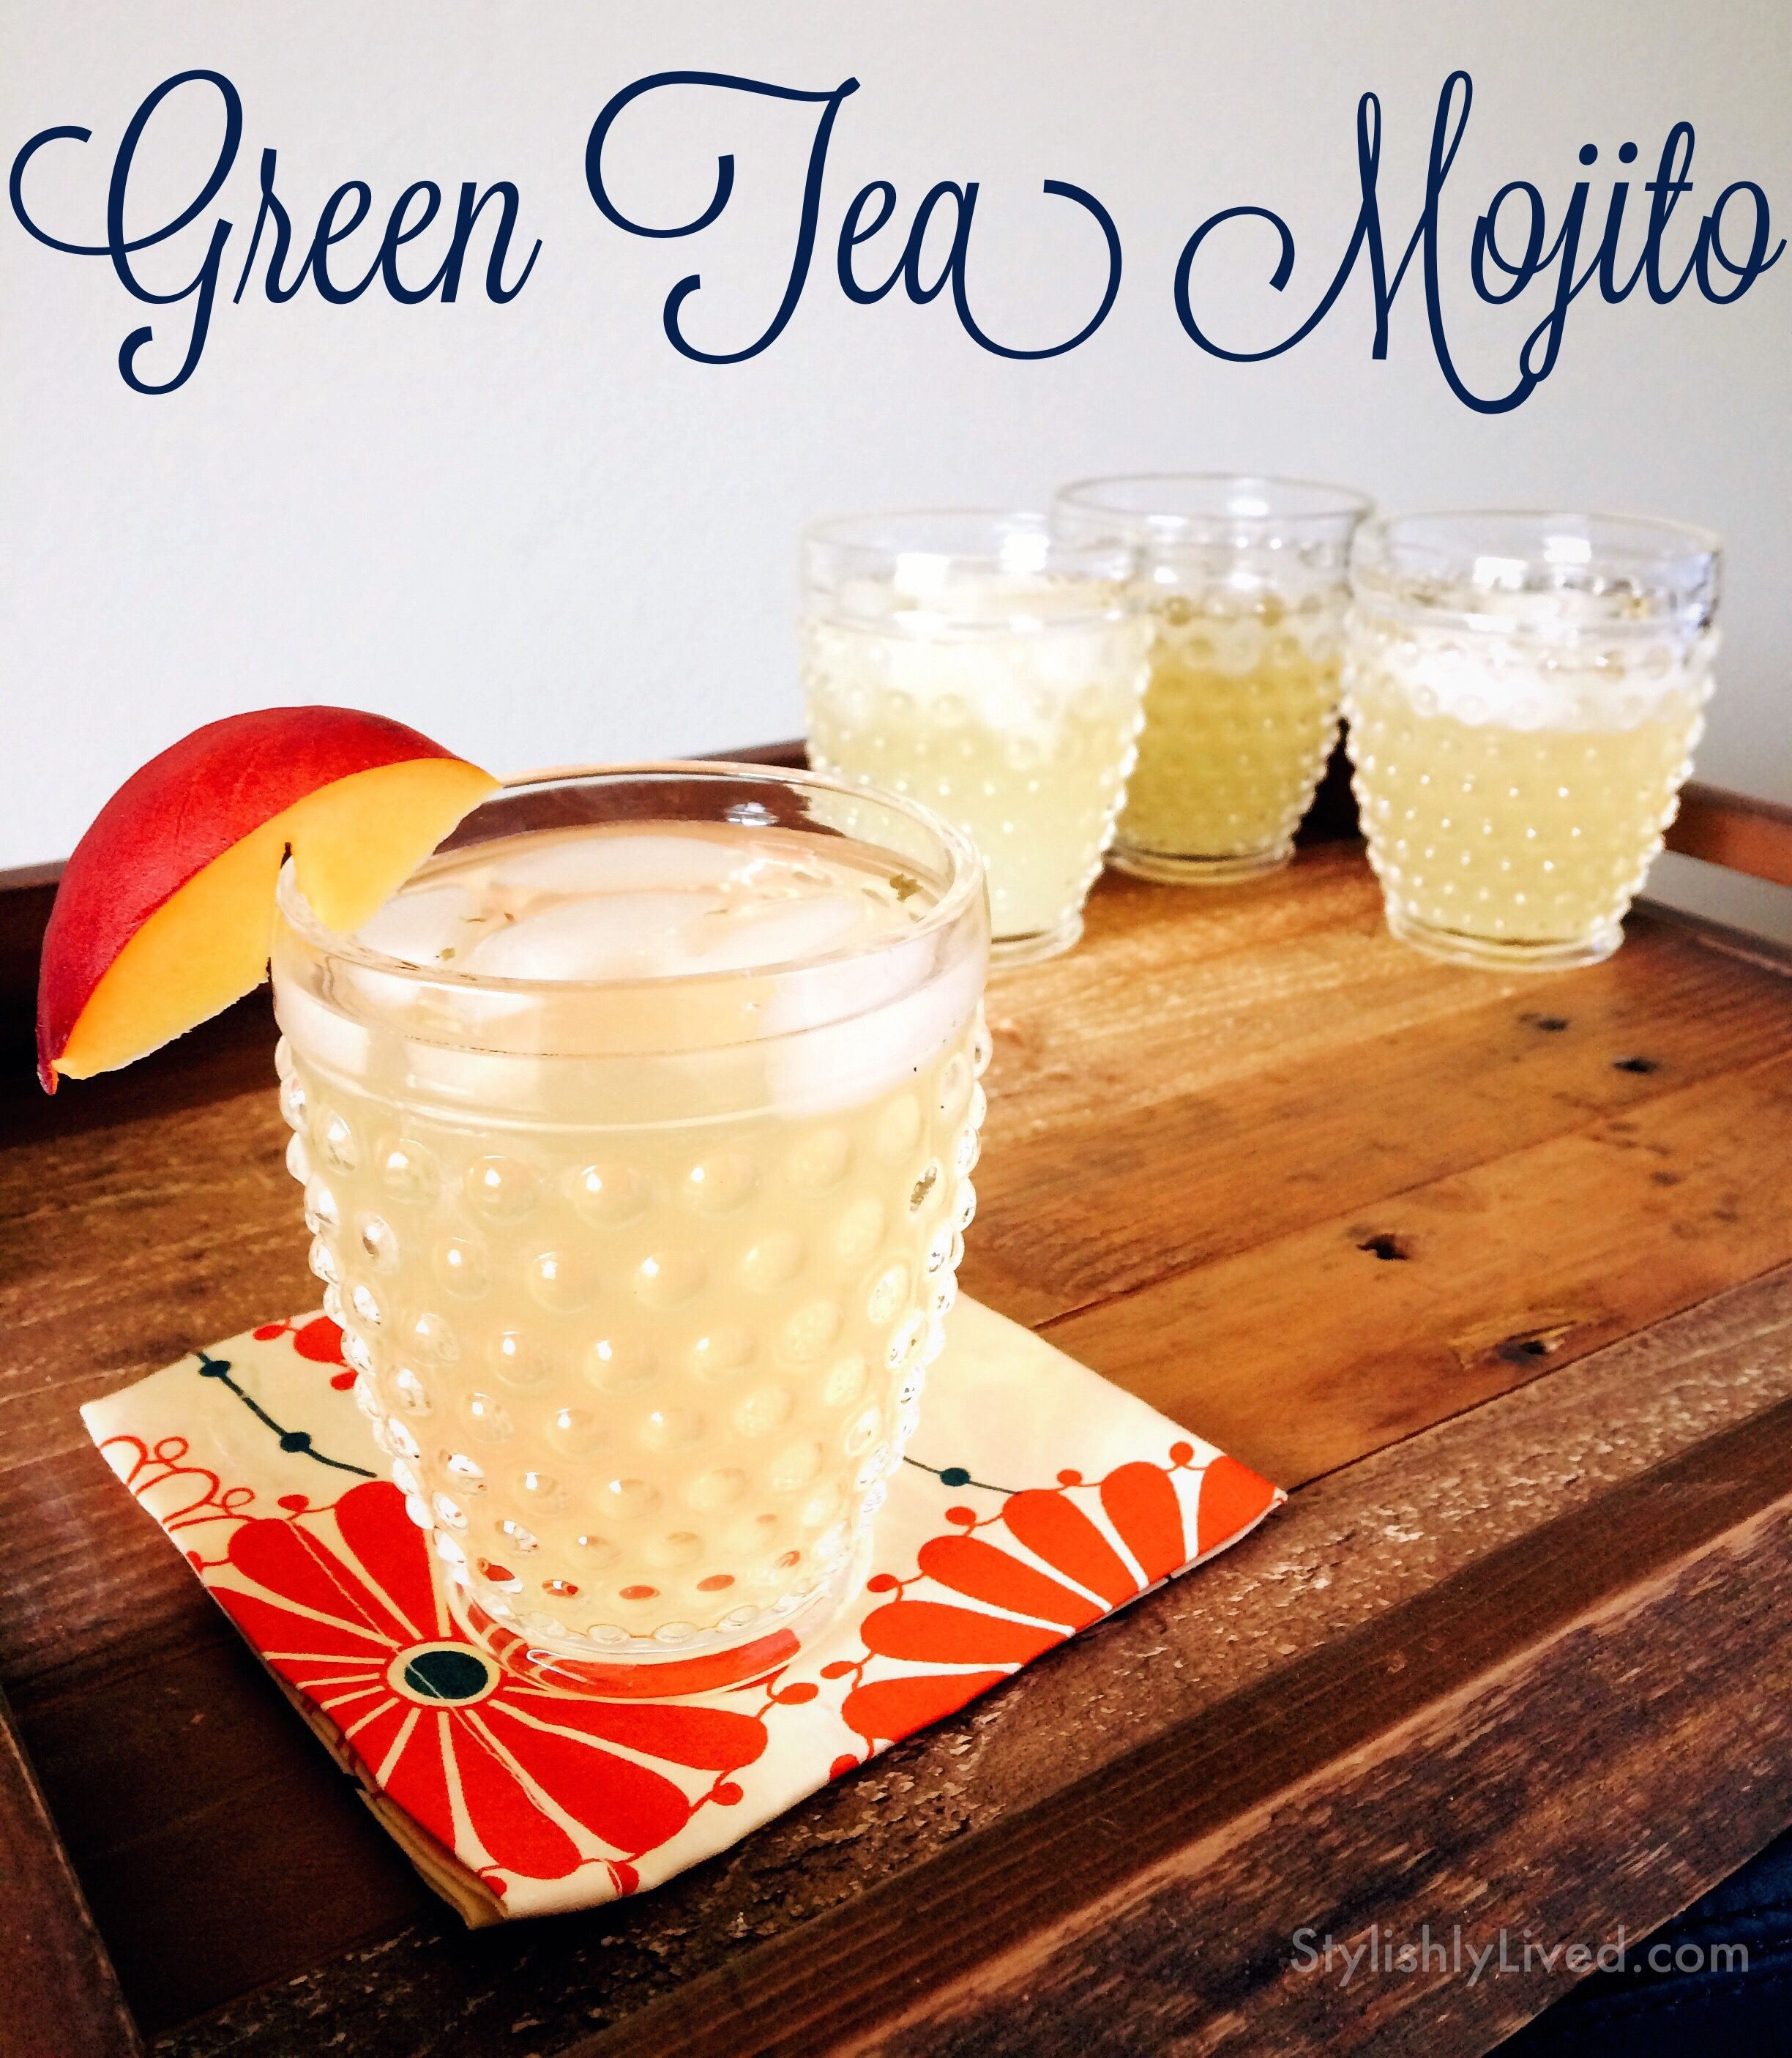 The perfect Summer cocktail for a group - Green Tea Mojitos